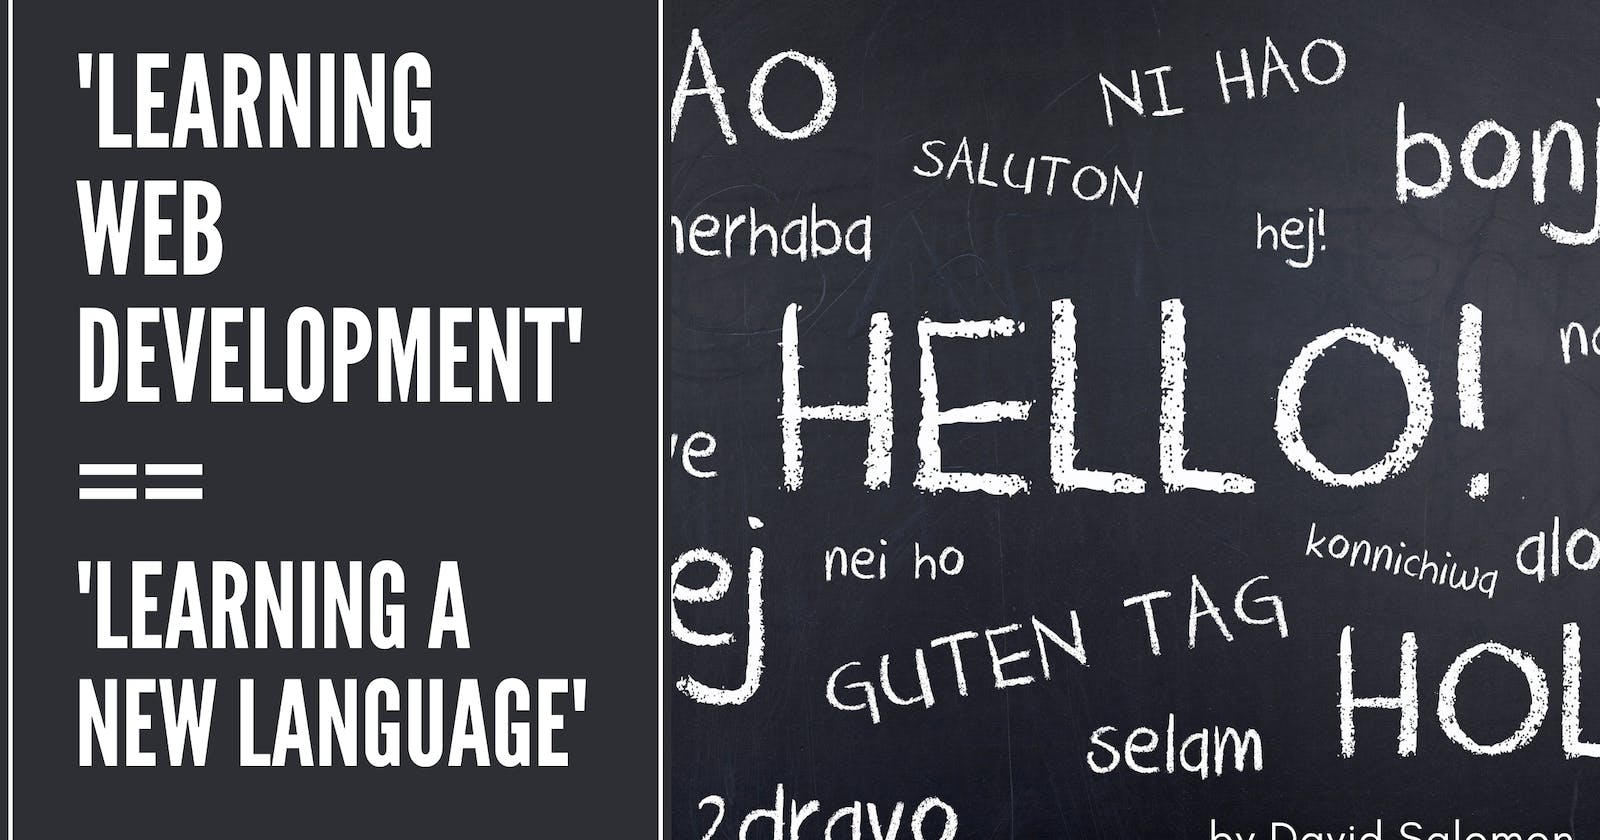 Learning web development is like learning a new language